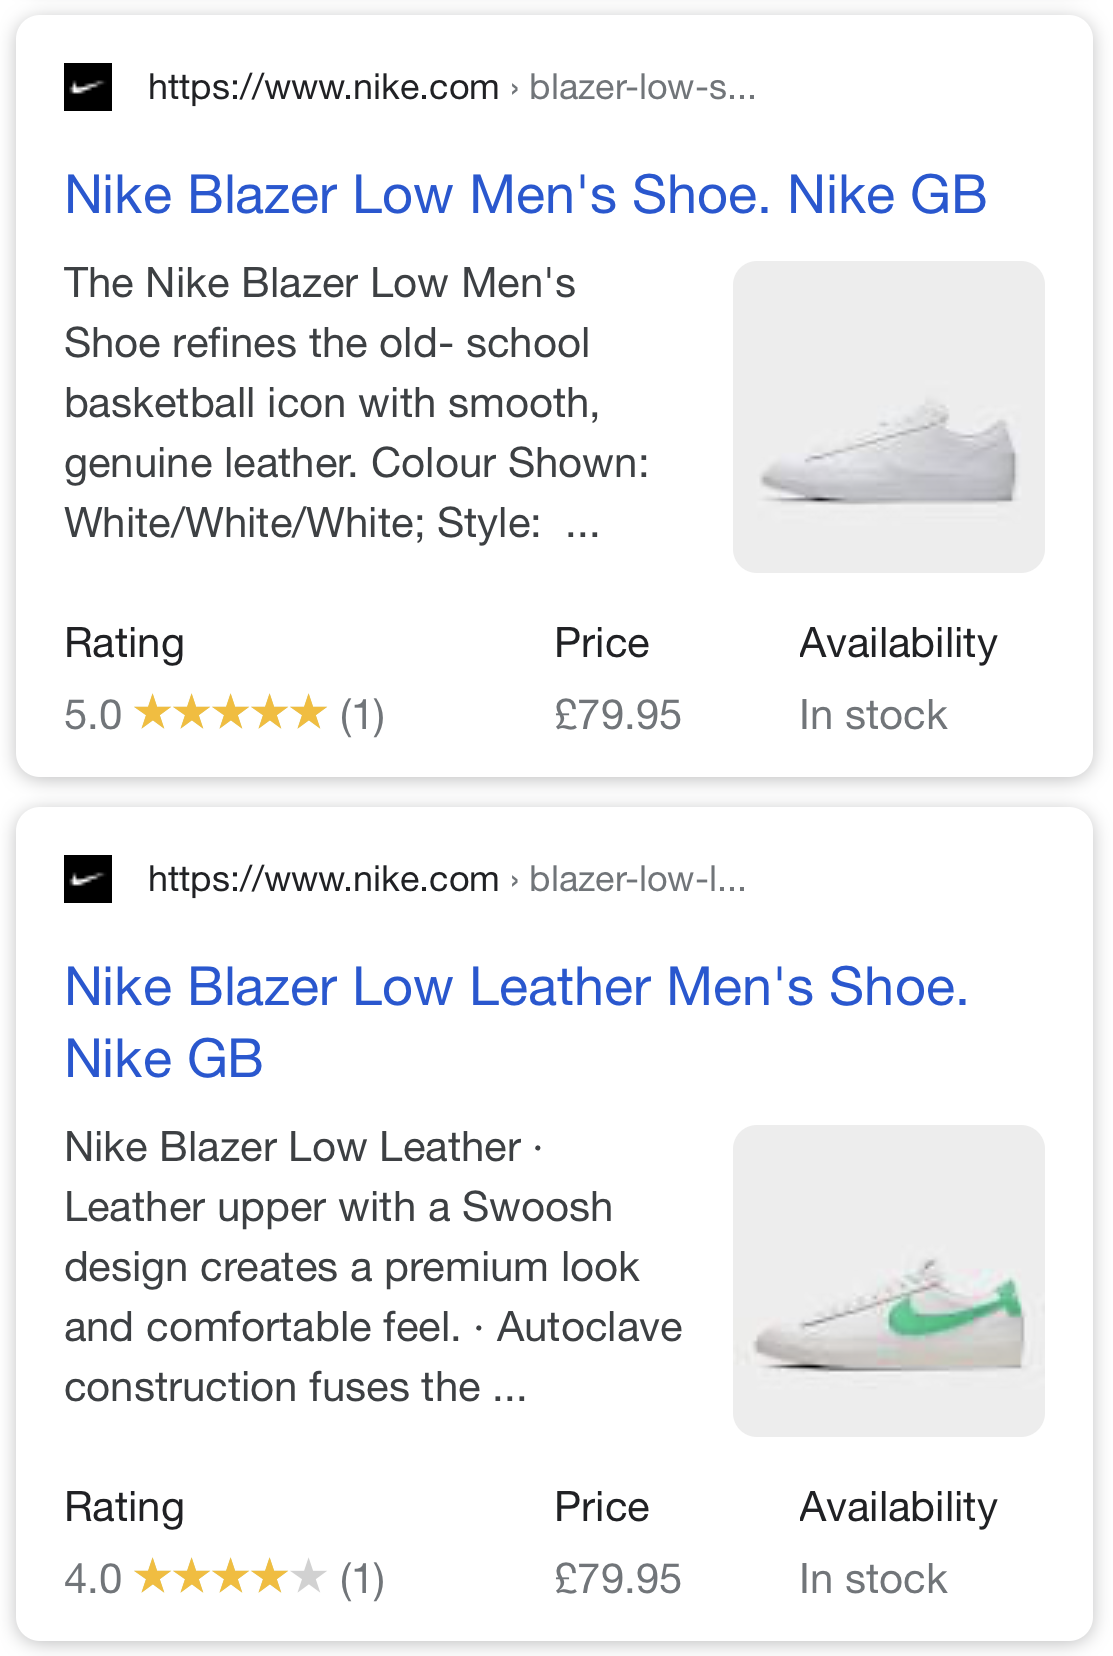 Products Rich Snippets in SERP.